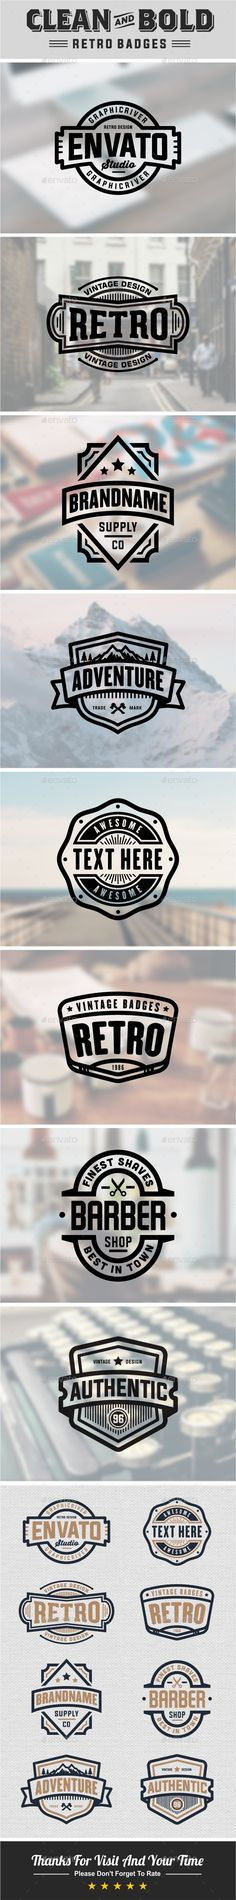 Clean And Bold Retro Badges. You can use as stamps, graphics, logos, etc. perfect for your vintage project.  FEATURES :  100 Full